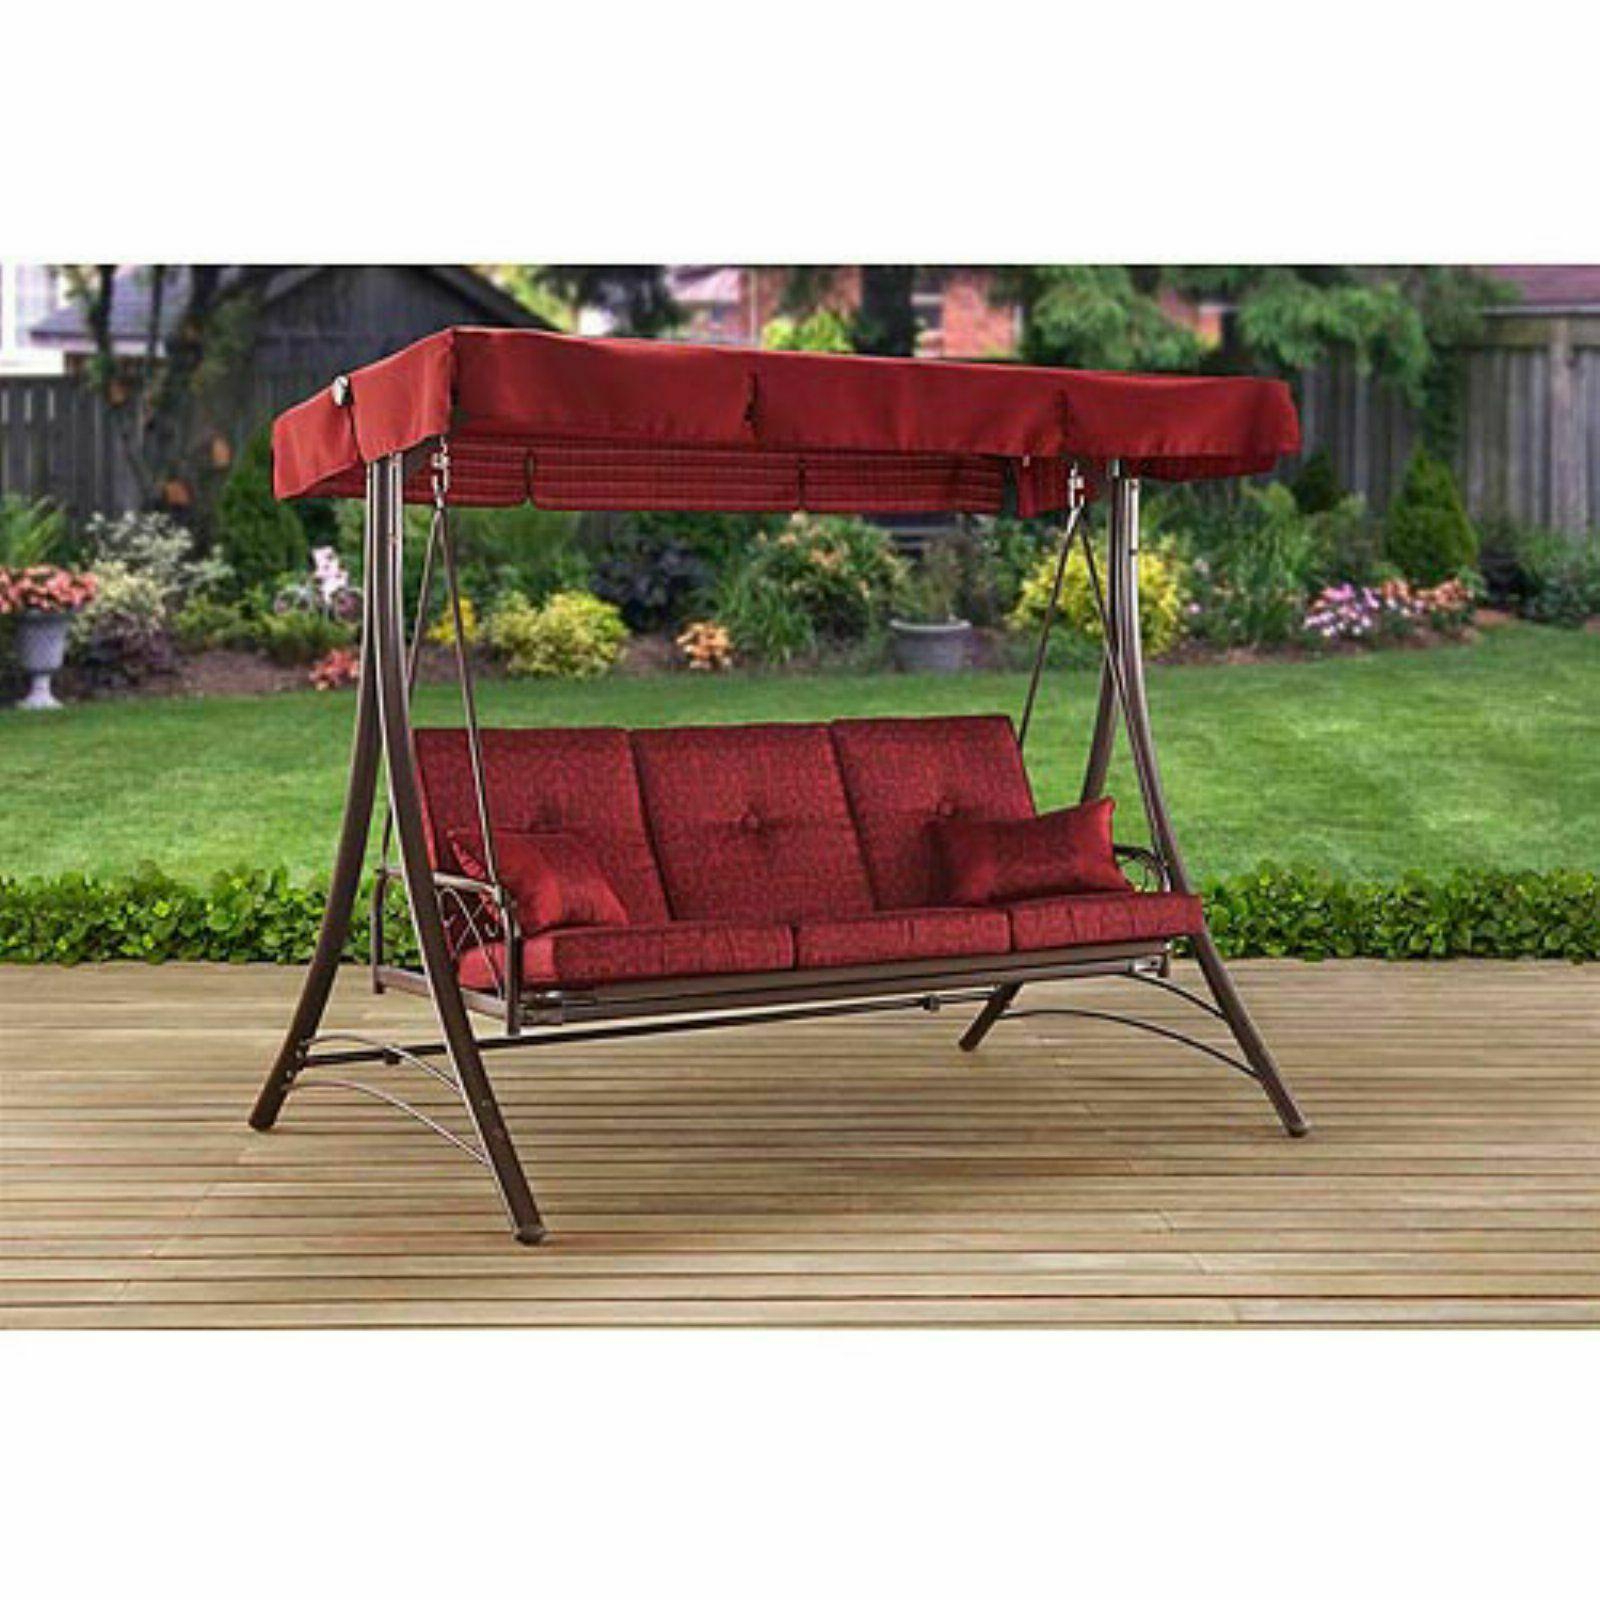 Widely Used 3 Person Red With Brown Powder Coated Frame Steel Outdoor Swings With Front Porch Swing Set Outdoor Patio Swin (View 13 of 25)